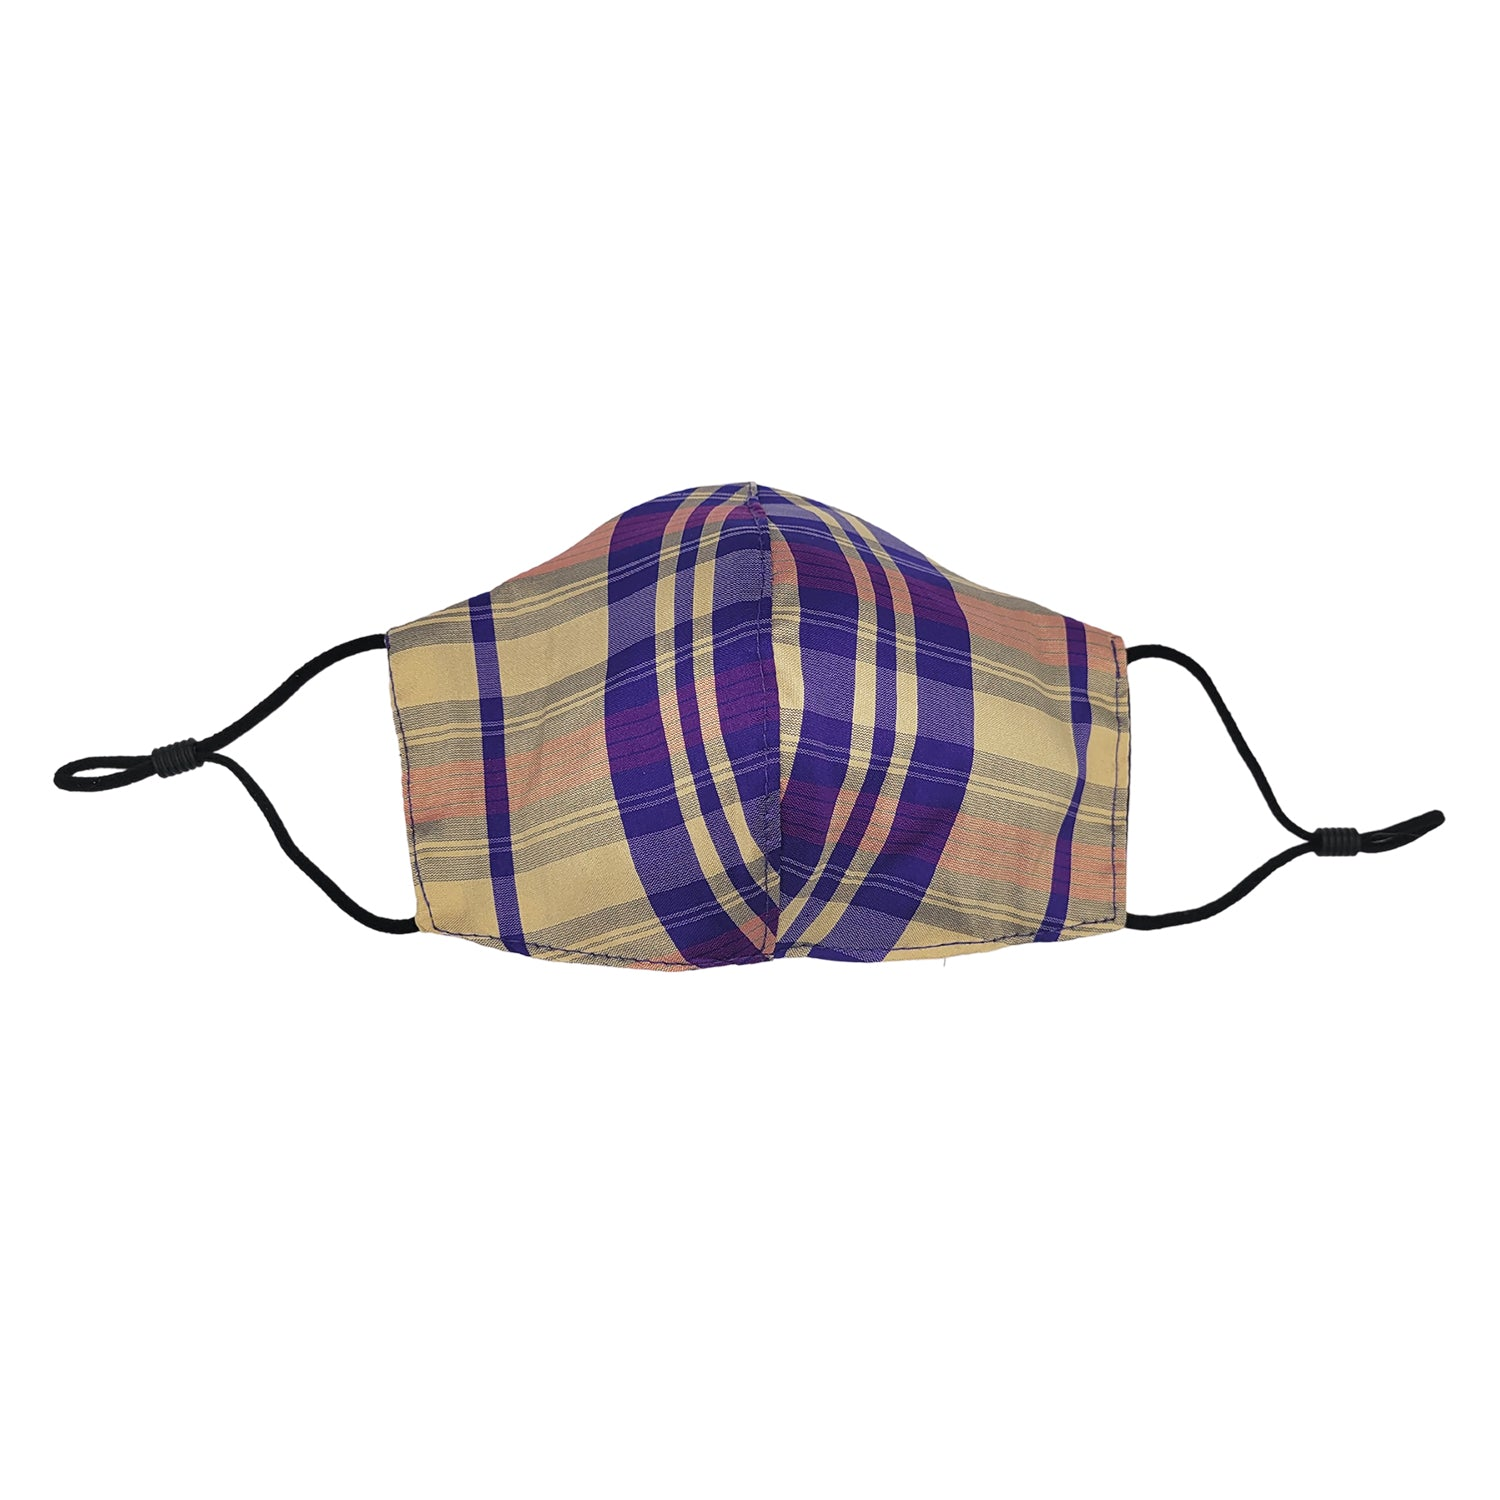 Tan/Purple Plaid Taffeta Face Mask with Filter